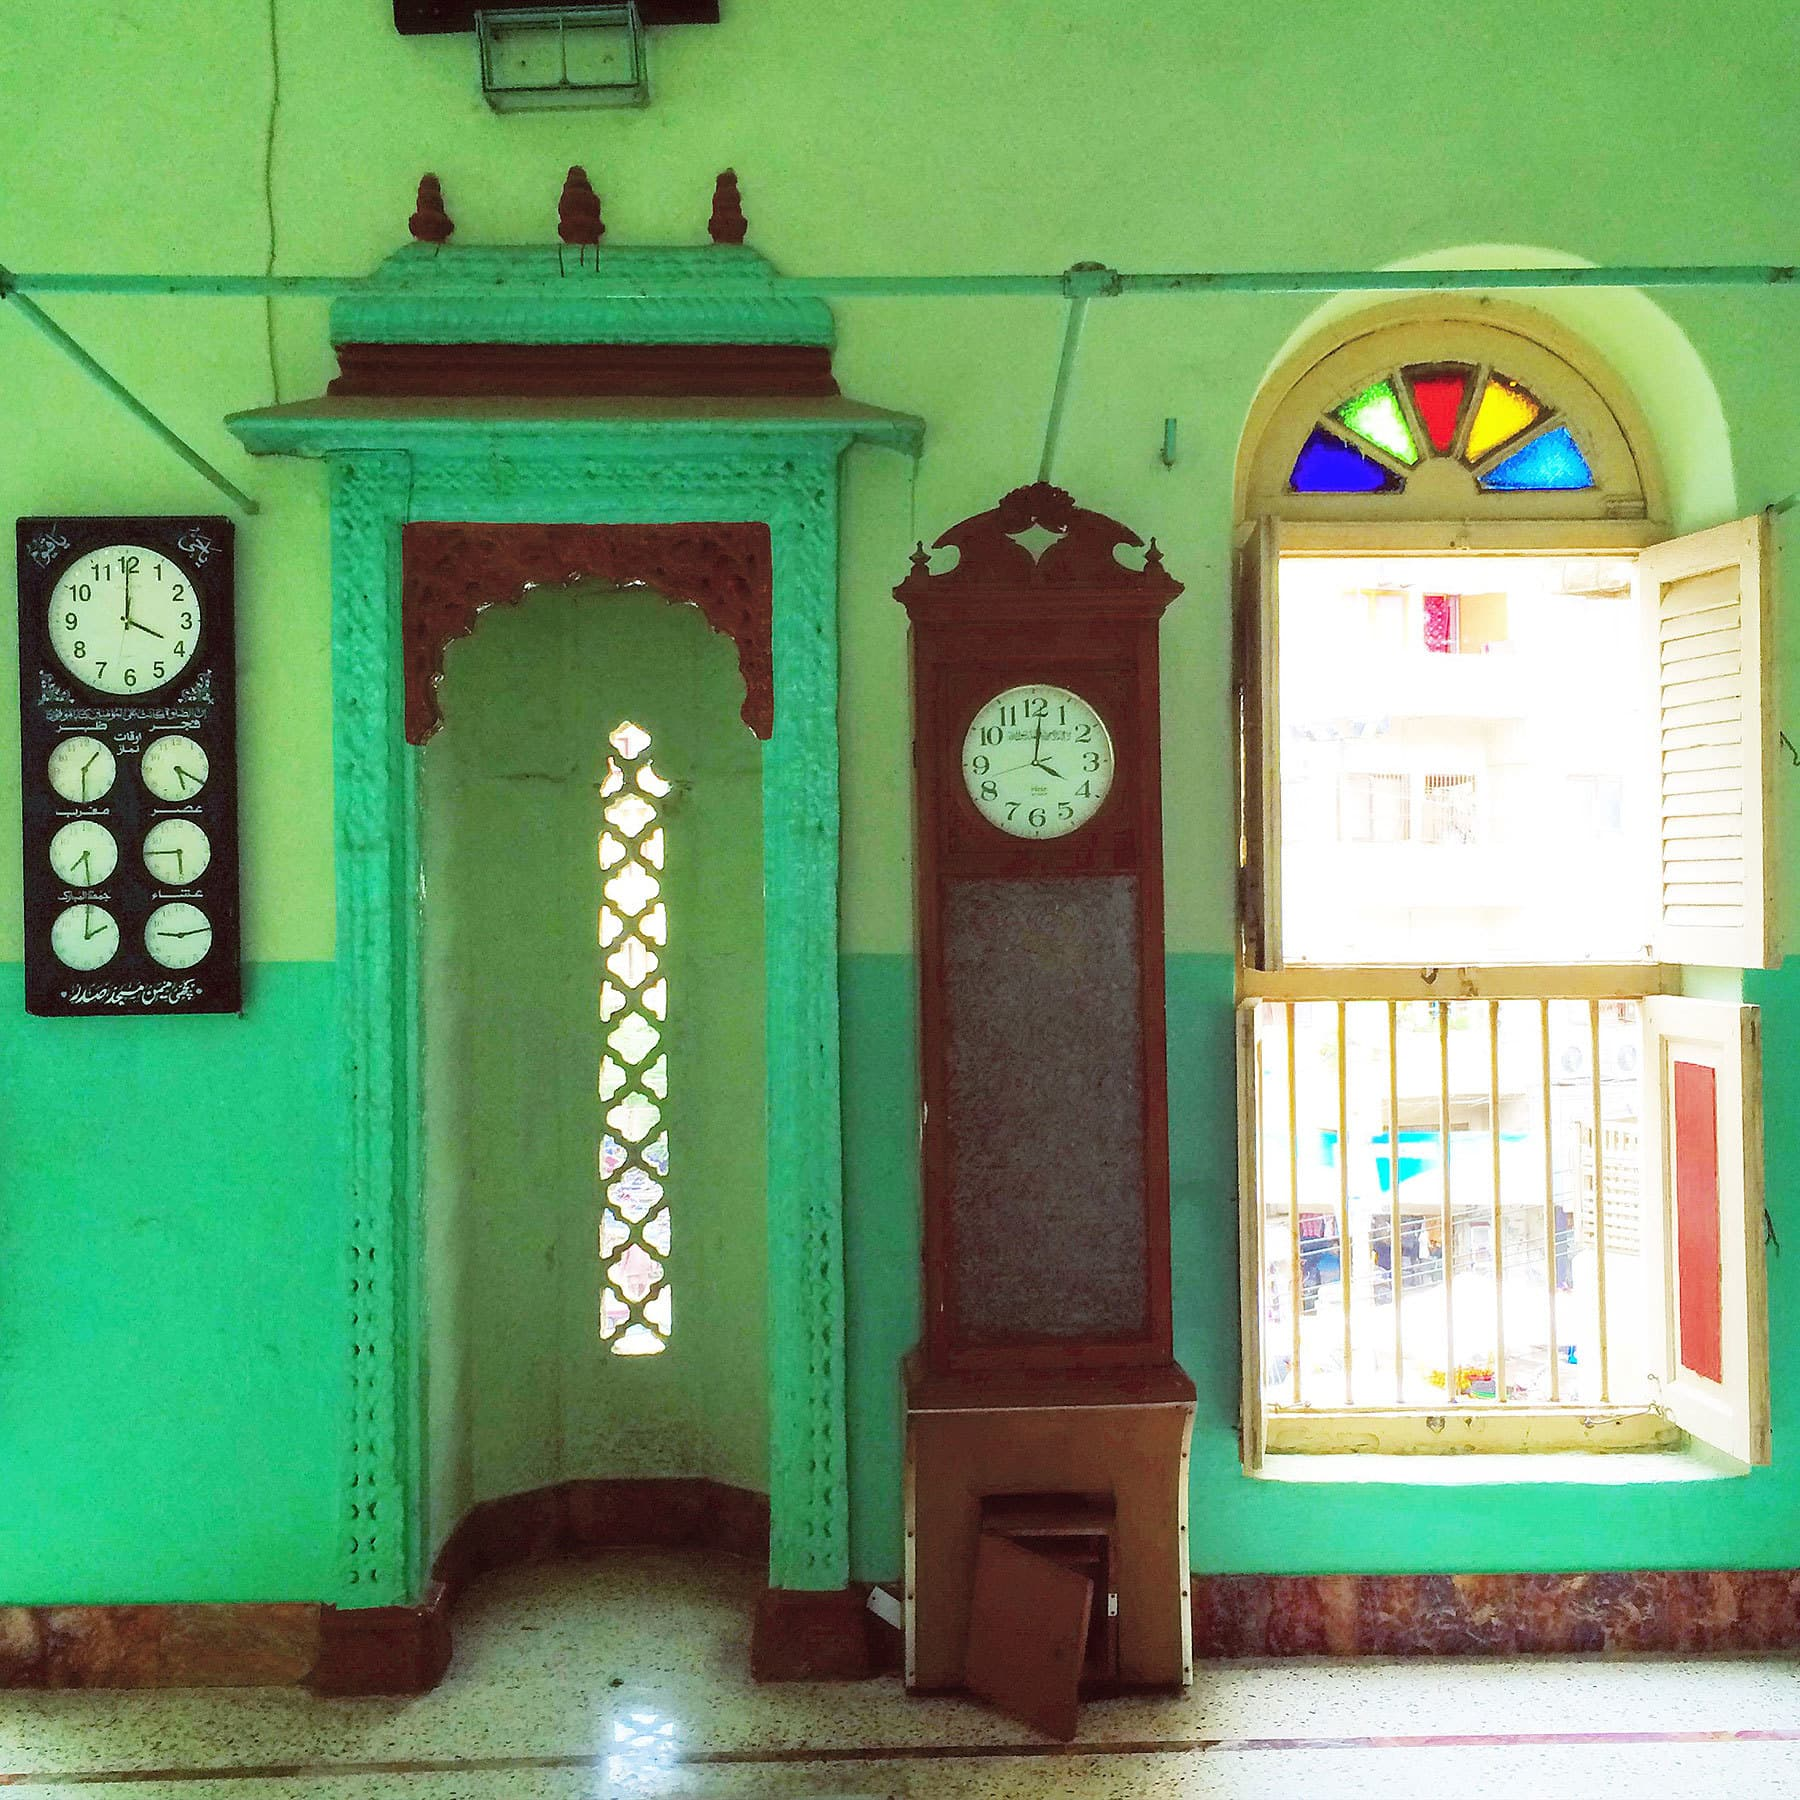 I particularly loved the interior of the mosque which was a unique Pistachio green.